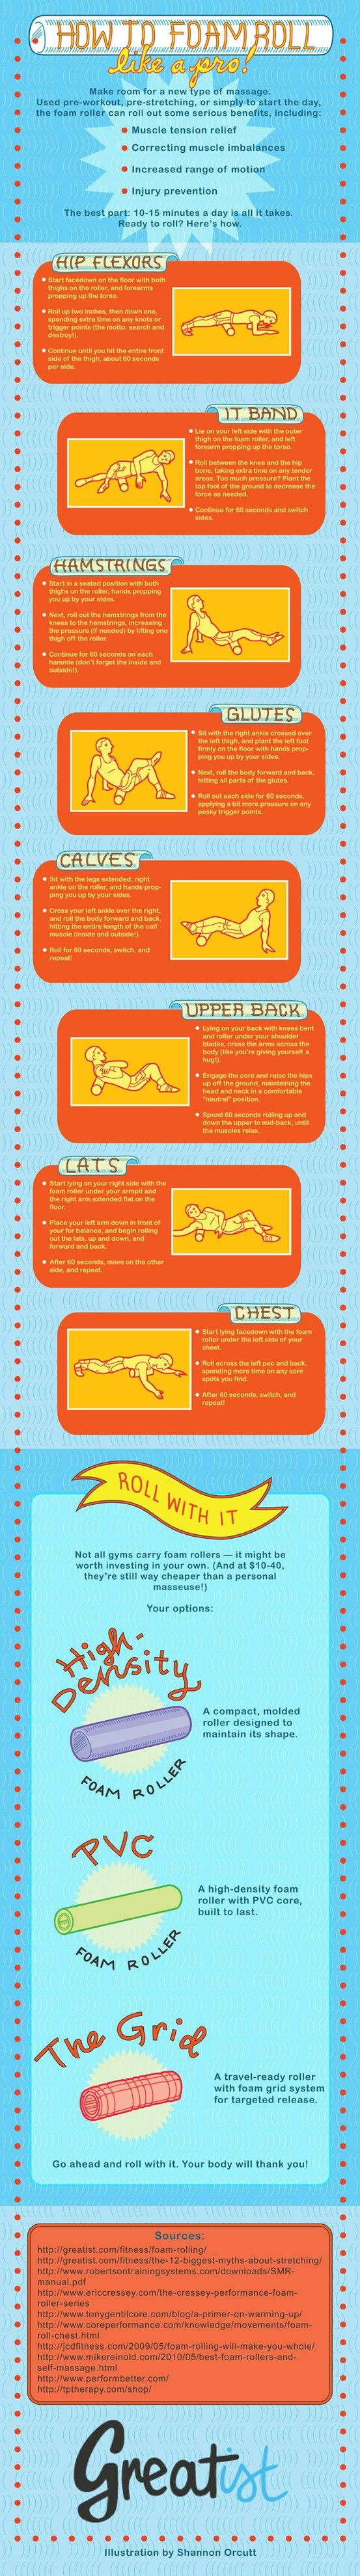 Buy foam roll physical therapy - Get To Know The Foam Roller This Infographic Covers All The Essential Moves To Rock N Roll That Next Workout I Love Mine